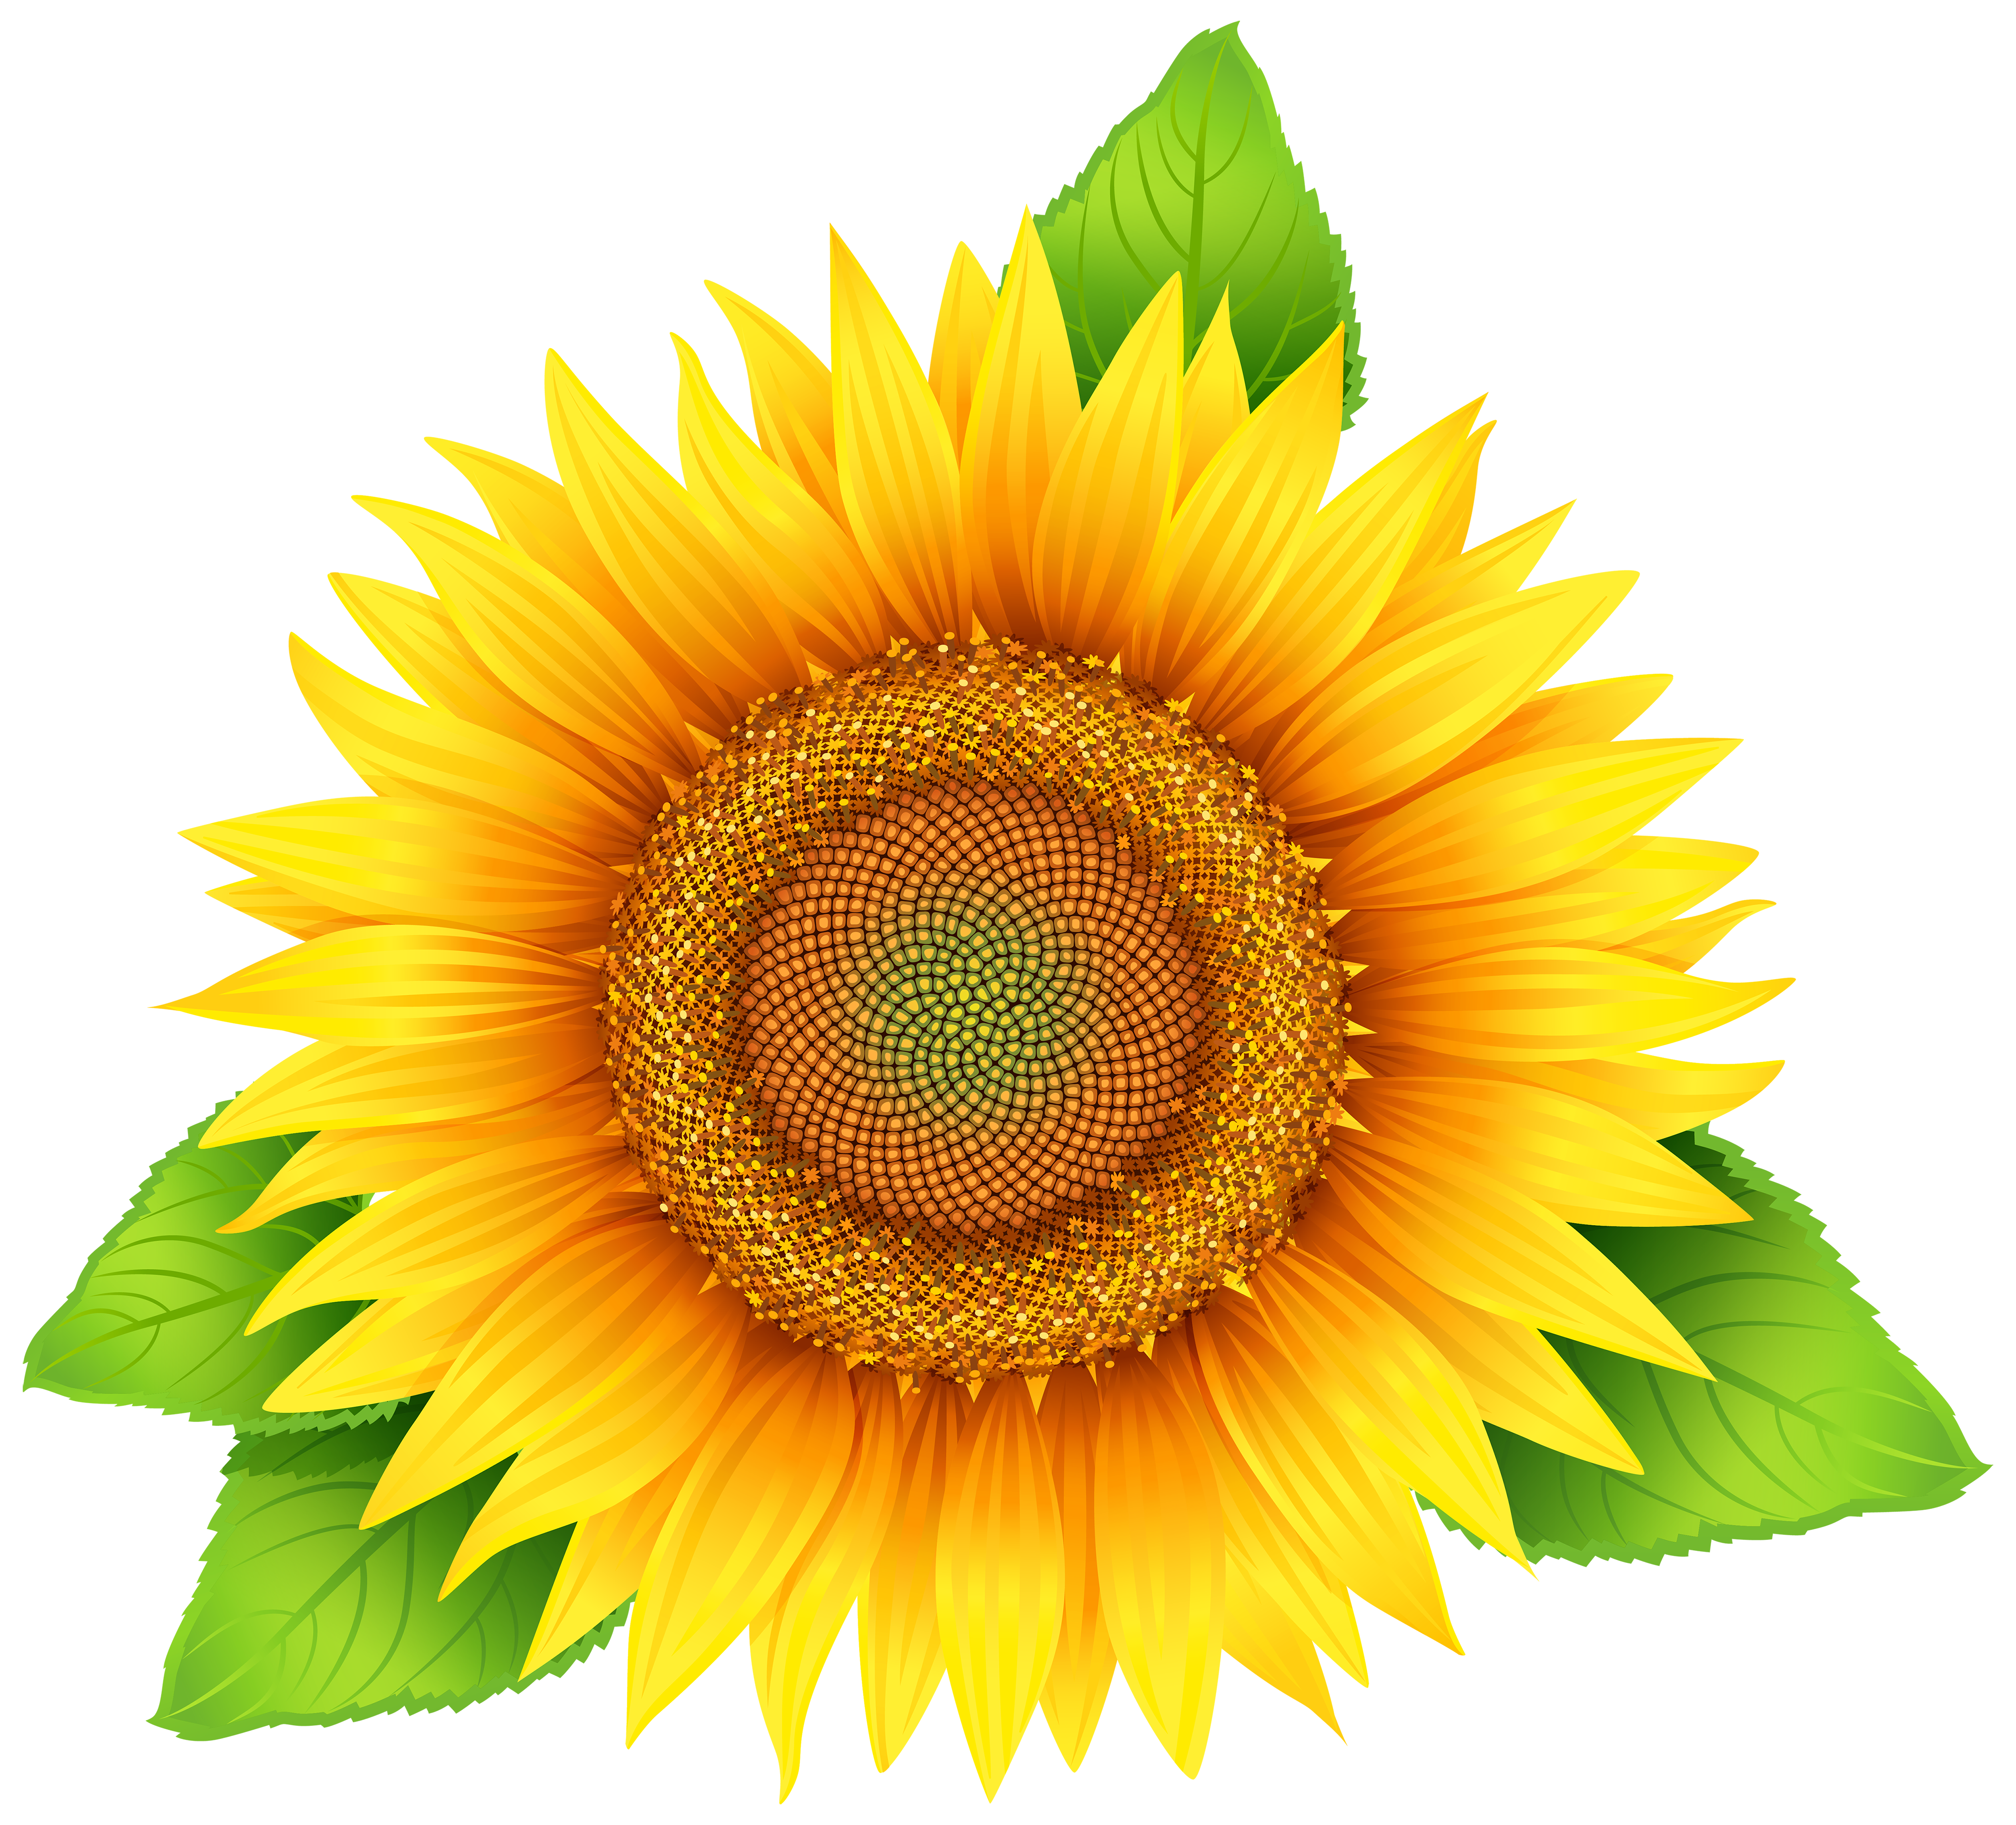 Sunflower clipart #2, Download drawings